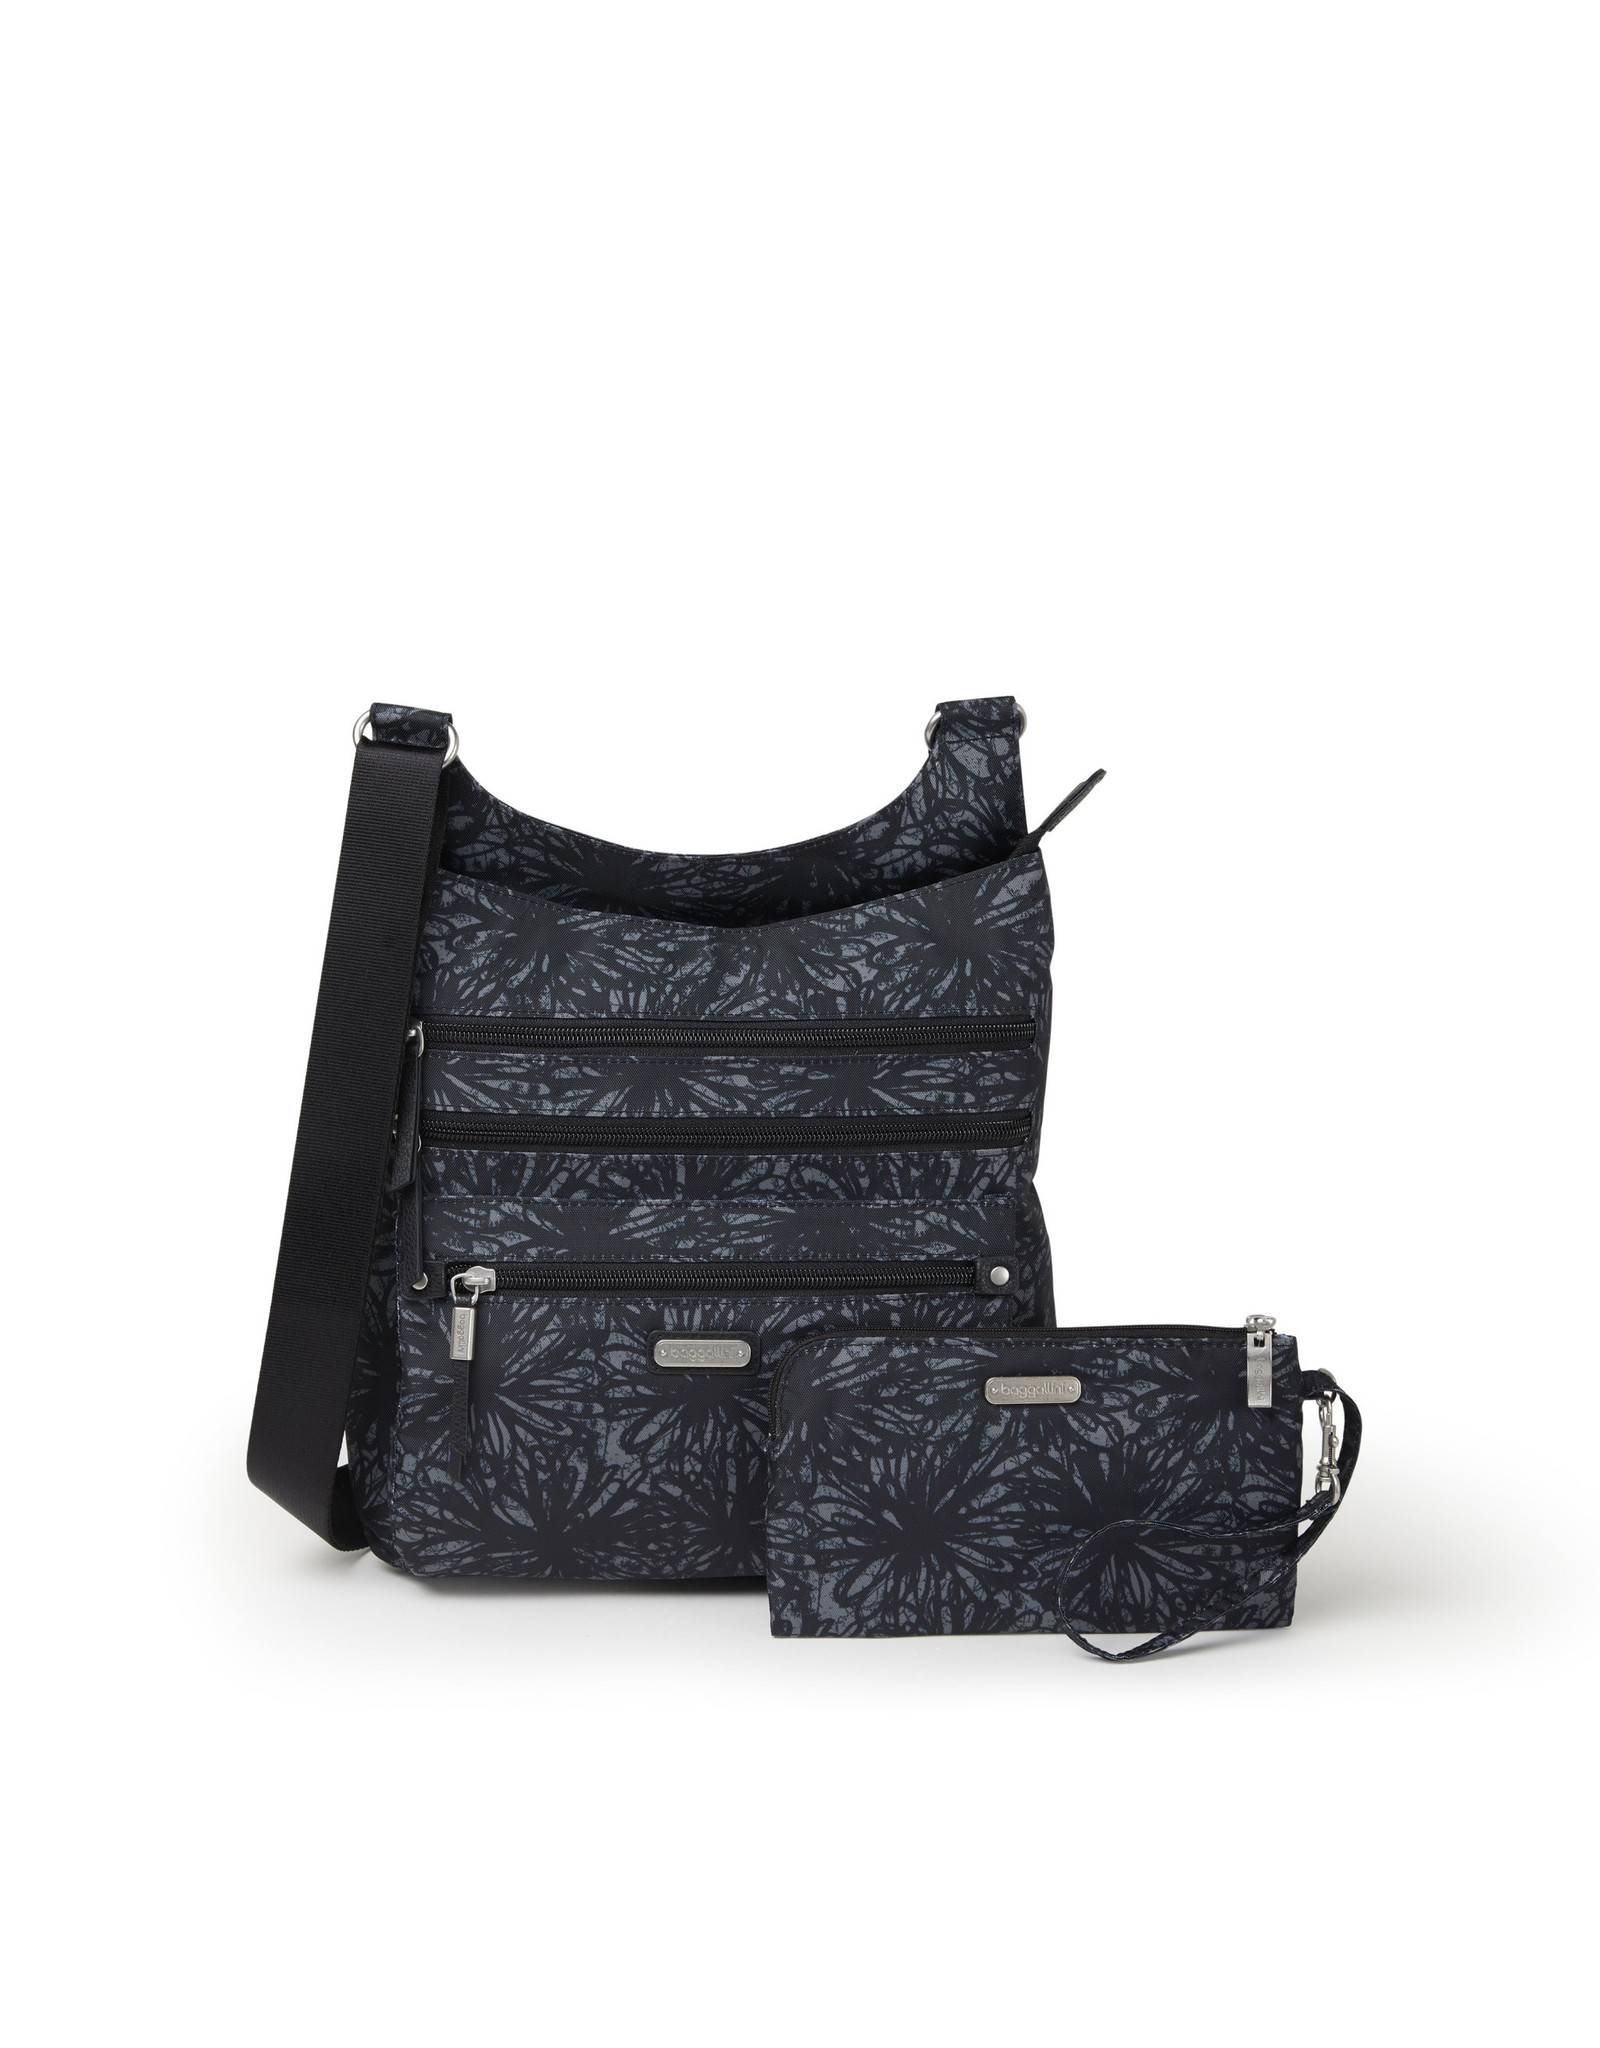 Baggallini Around Town Bagg - Onyx Floral